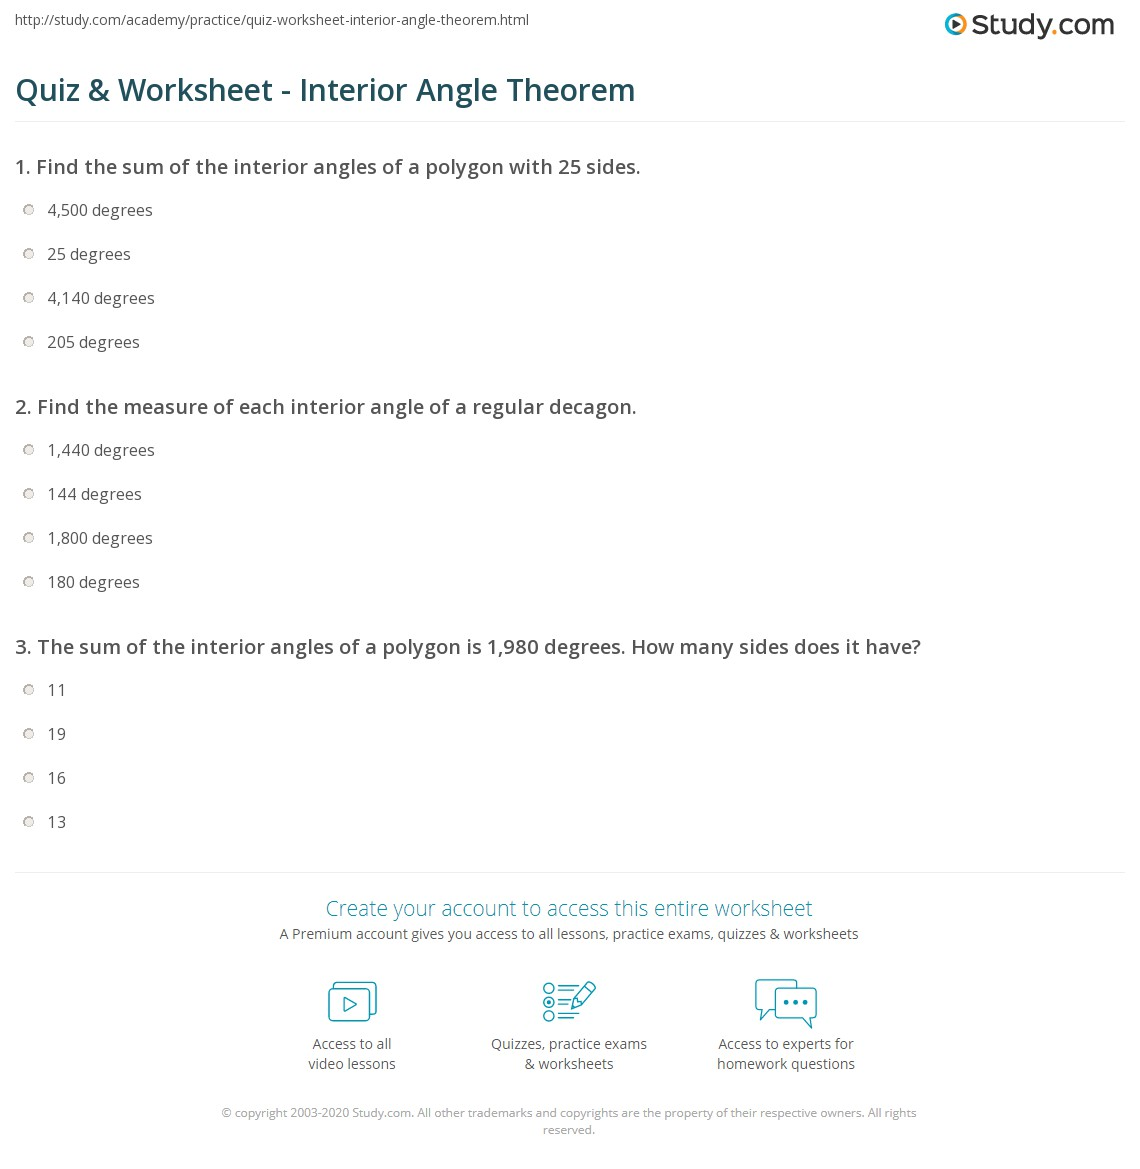 Quiz Worksheet Interior Angle Theorem – Interior Angles of Polygons Worksheet